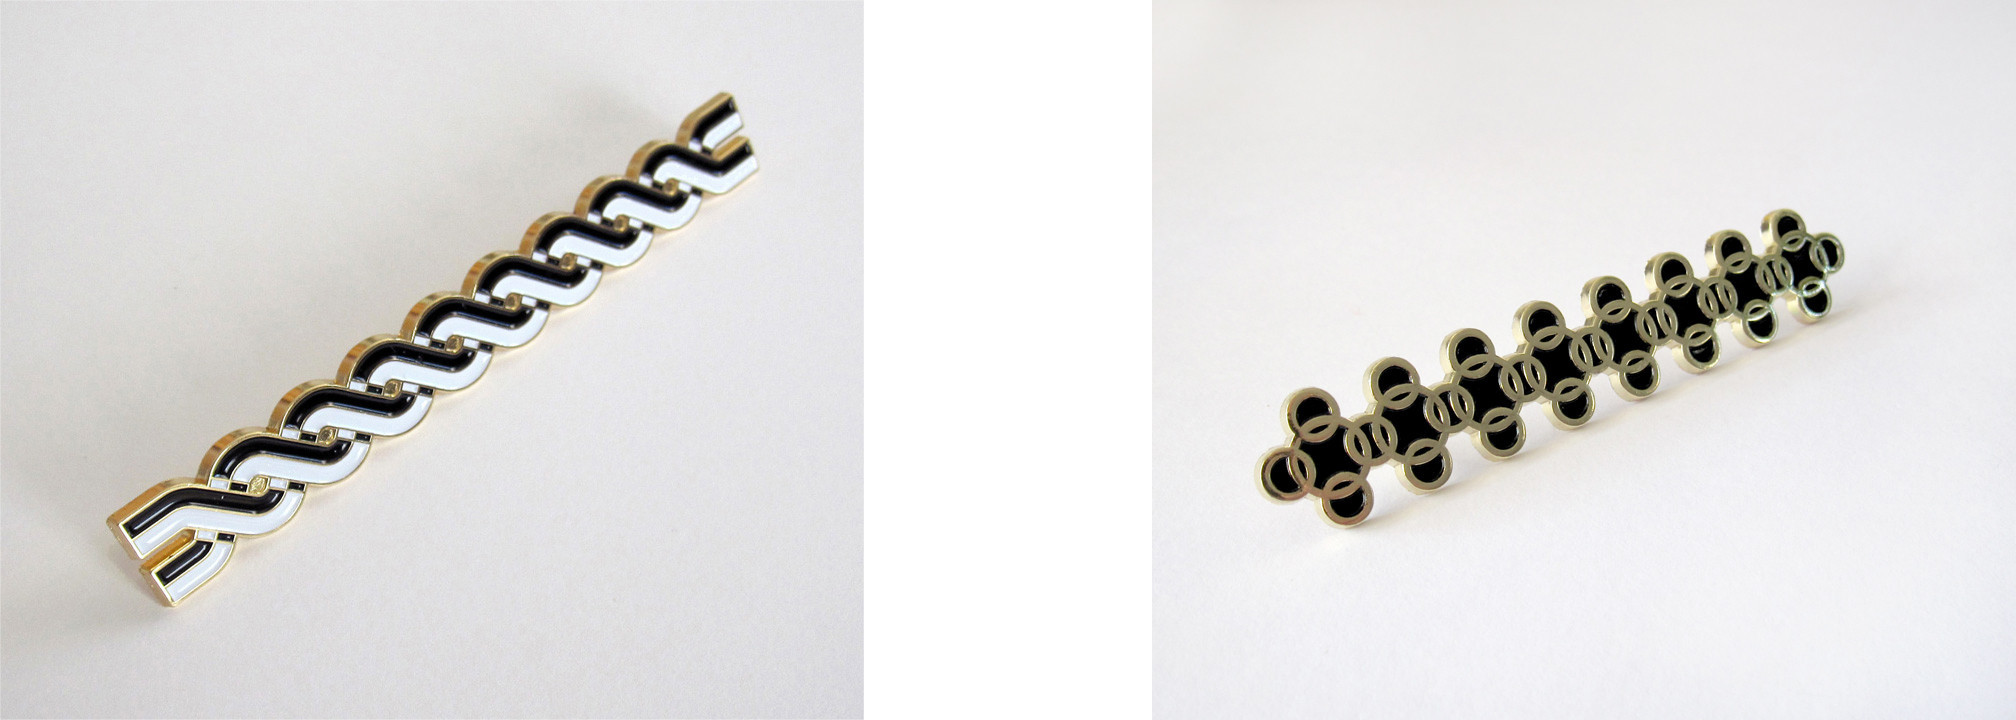 [left] Stone Cactus Twist Pin, 2013. Diecast zinc alloy and soft enamel, 4 x 0.5 inches. Double clutch closure. Courtesy of Diagonal Press. [right] Japanese Maille Pin, 2015. Diecast zinc alloy and soft enamel, 3.1385 x 0.55 inches. Double clutch closure. Courtesy of Diagonal Press.